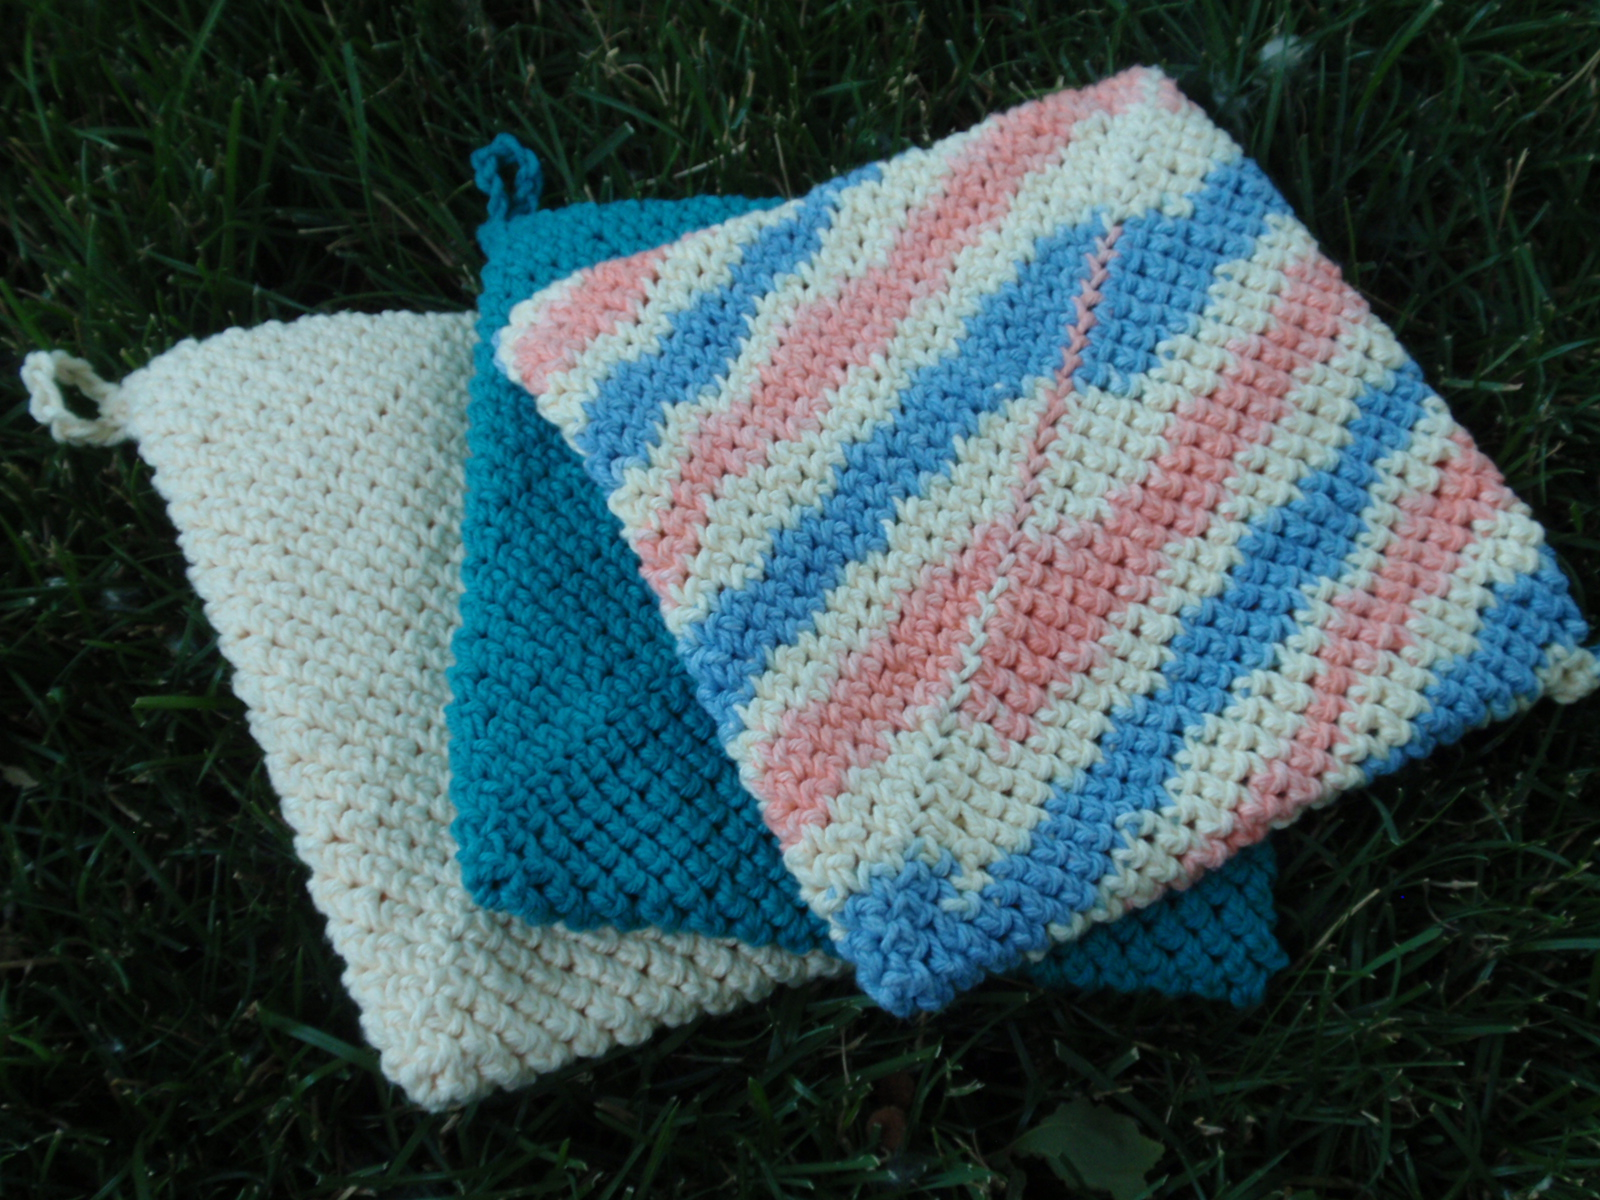 Easy Crochet Pattern For A Potholder Free Crochet Potholder Patterns ...